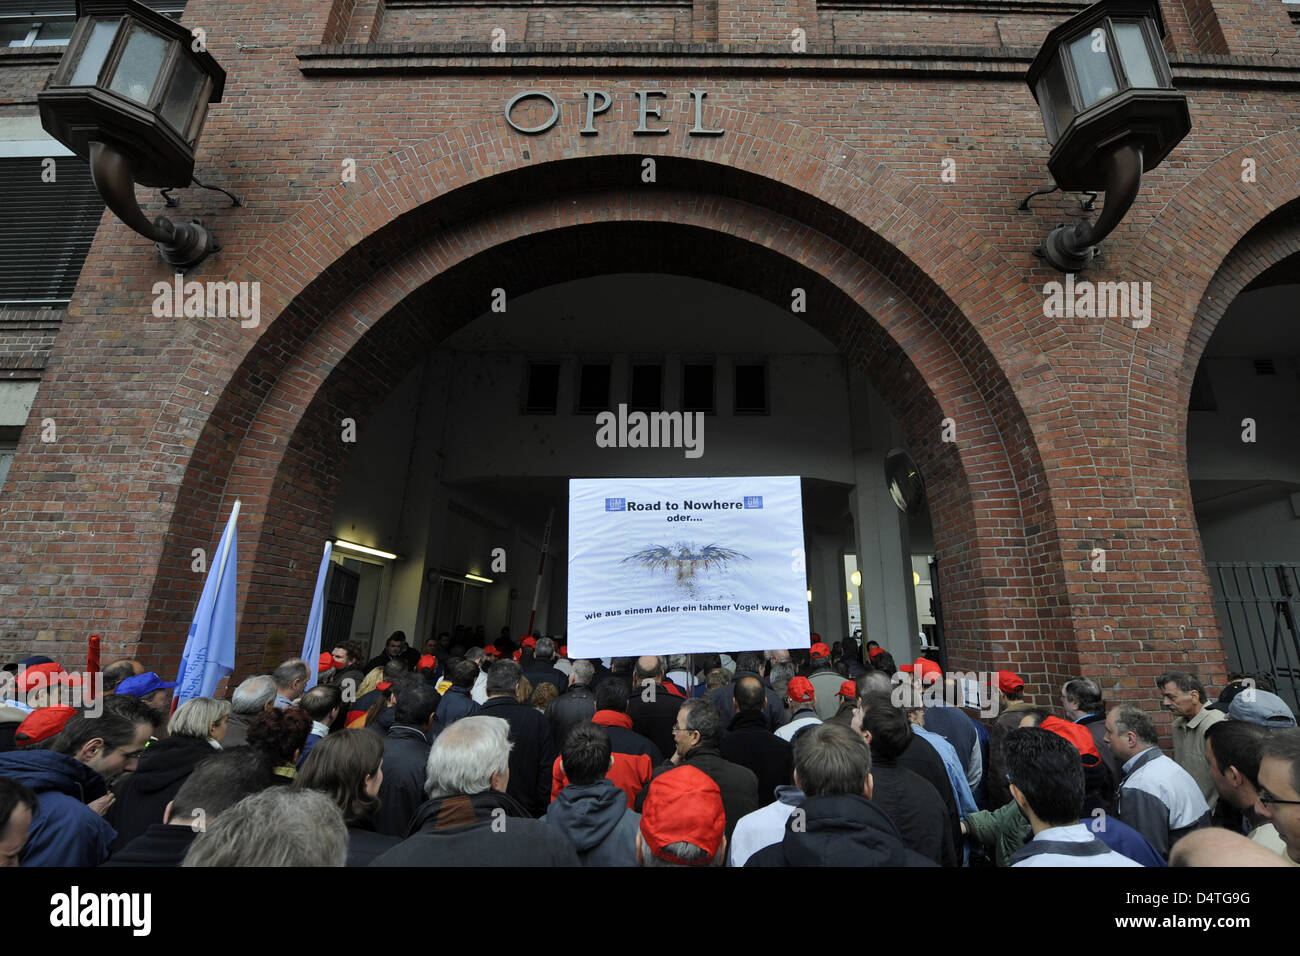 Opel employees protest in front of the Opel headquarters in Ruesselsheim, Germany, 05 November 2009. Thousands of - Stock Image